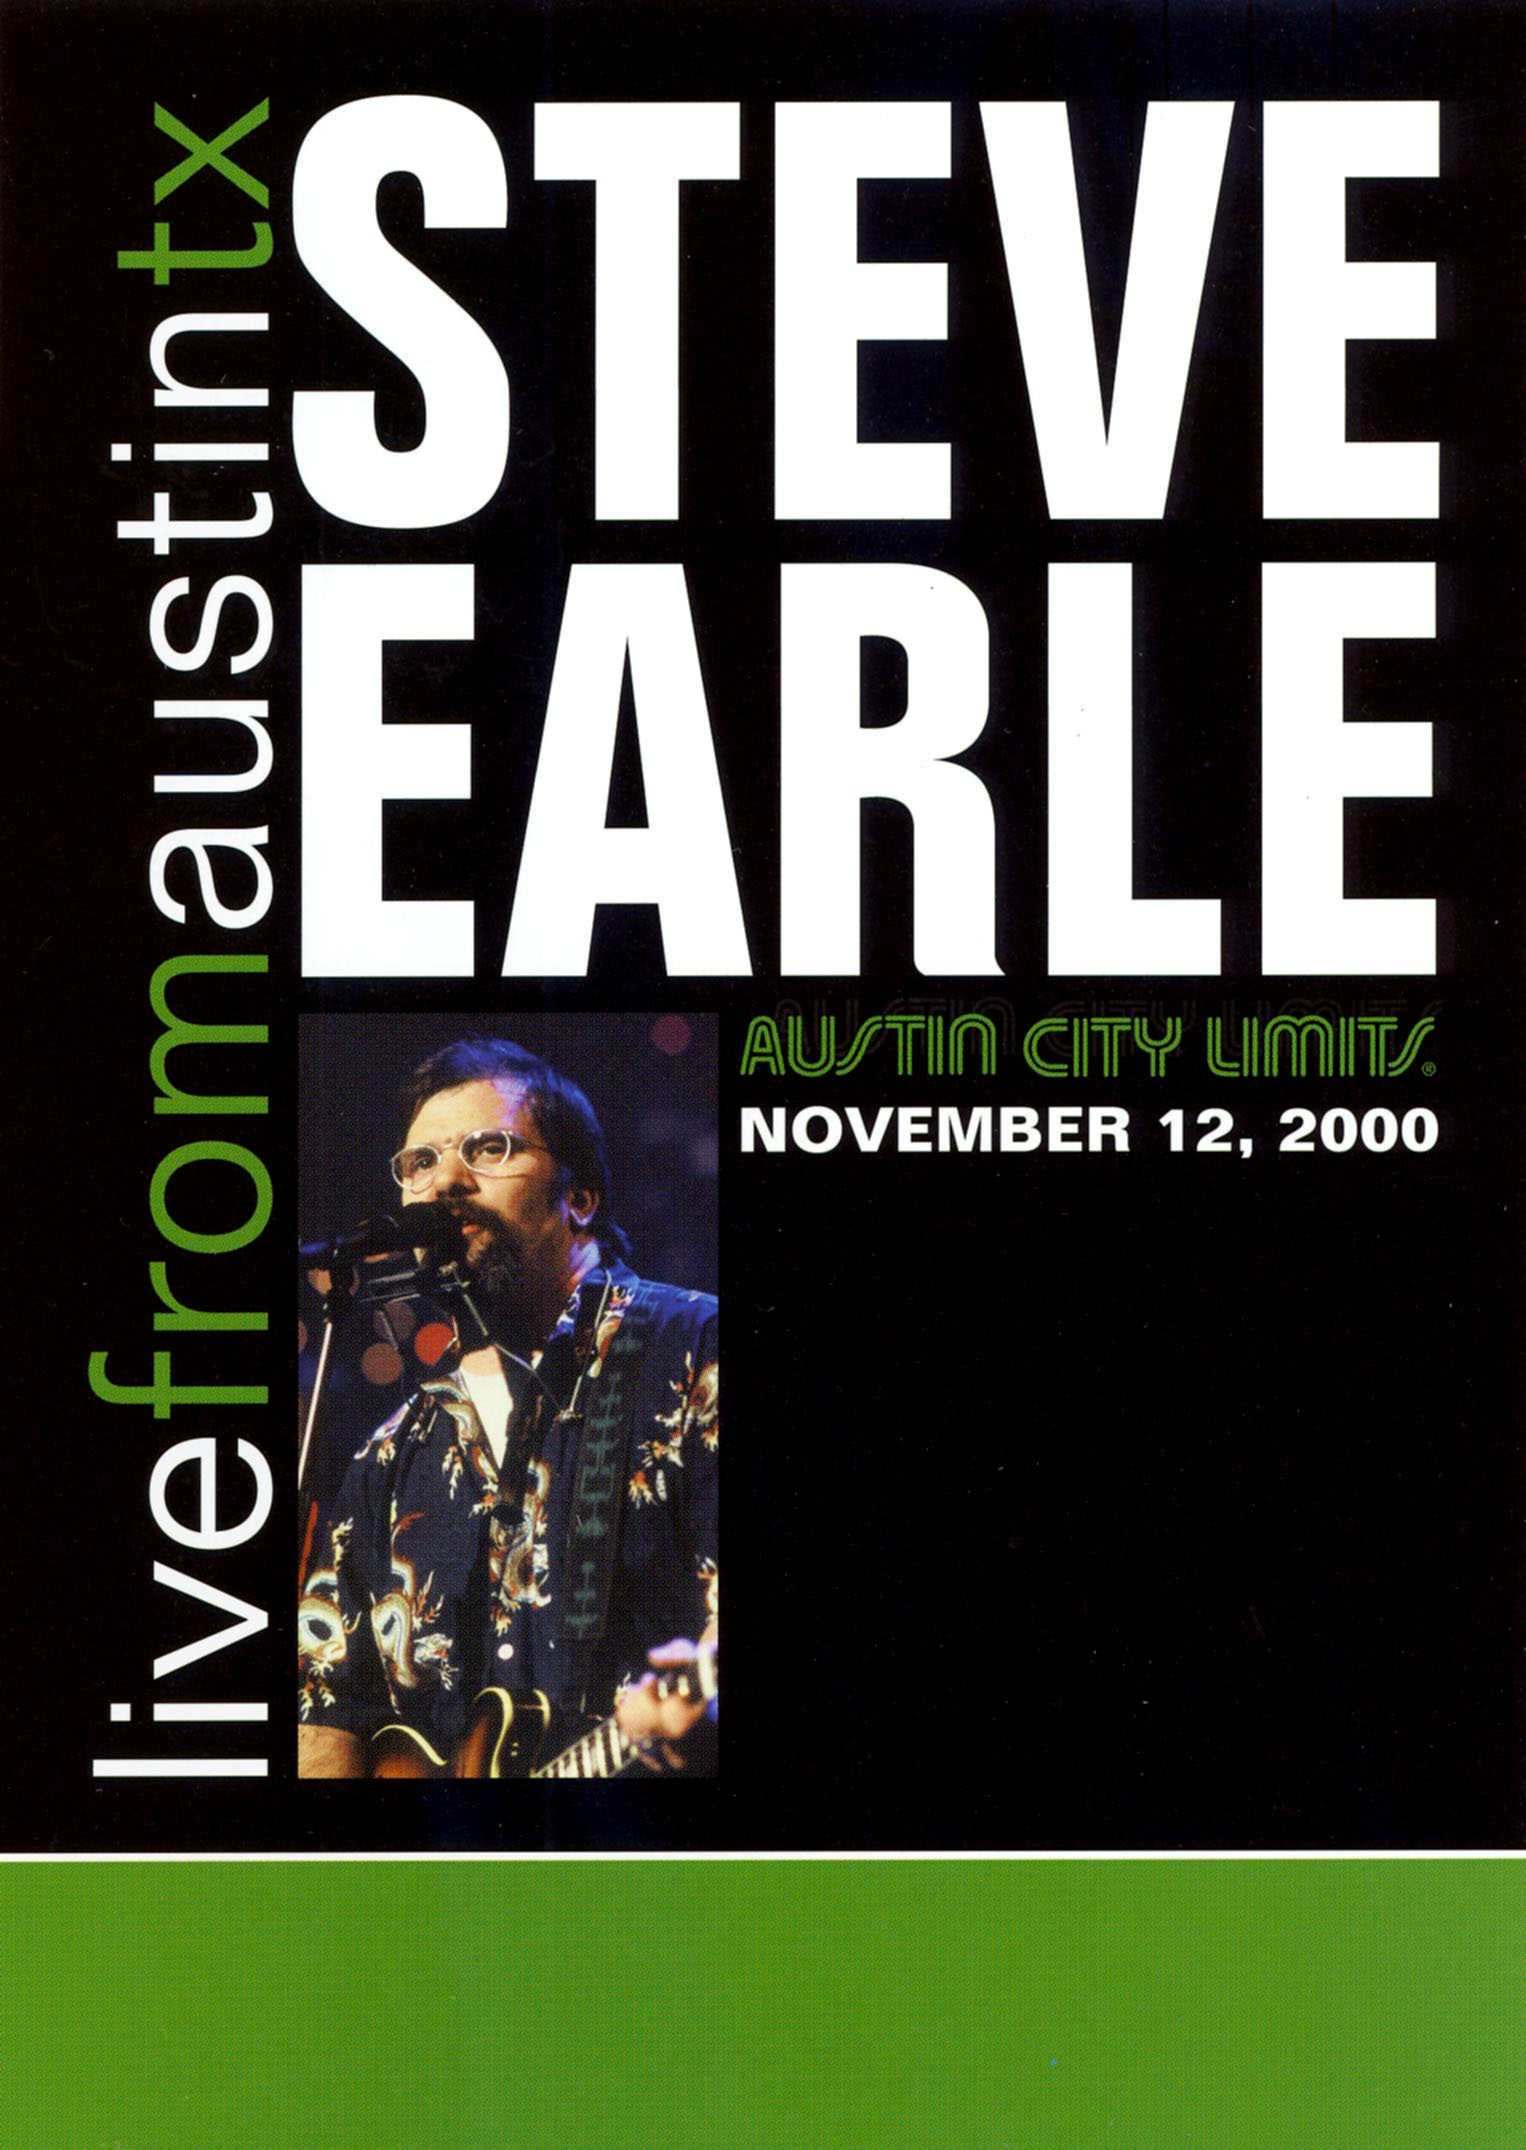 Live From Austin TX: Steve Earle